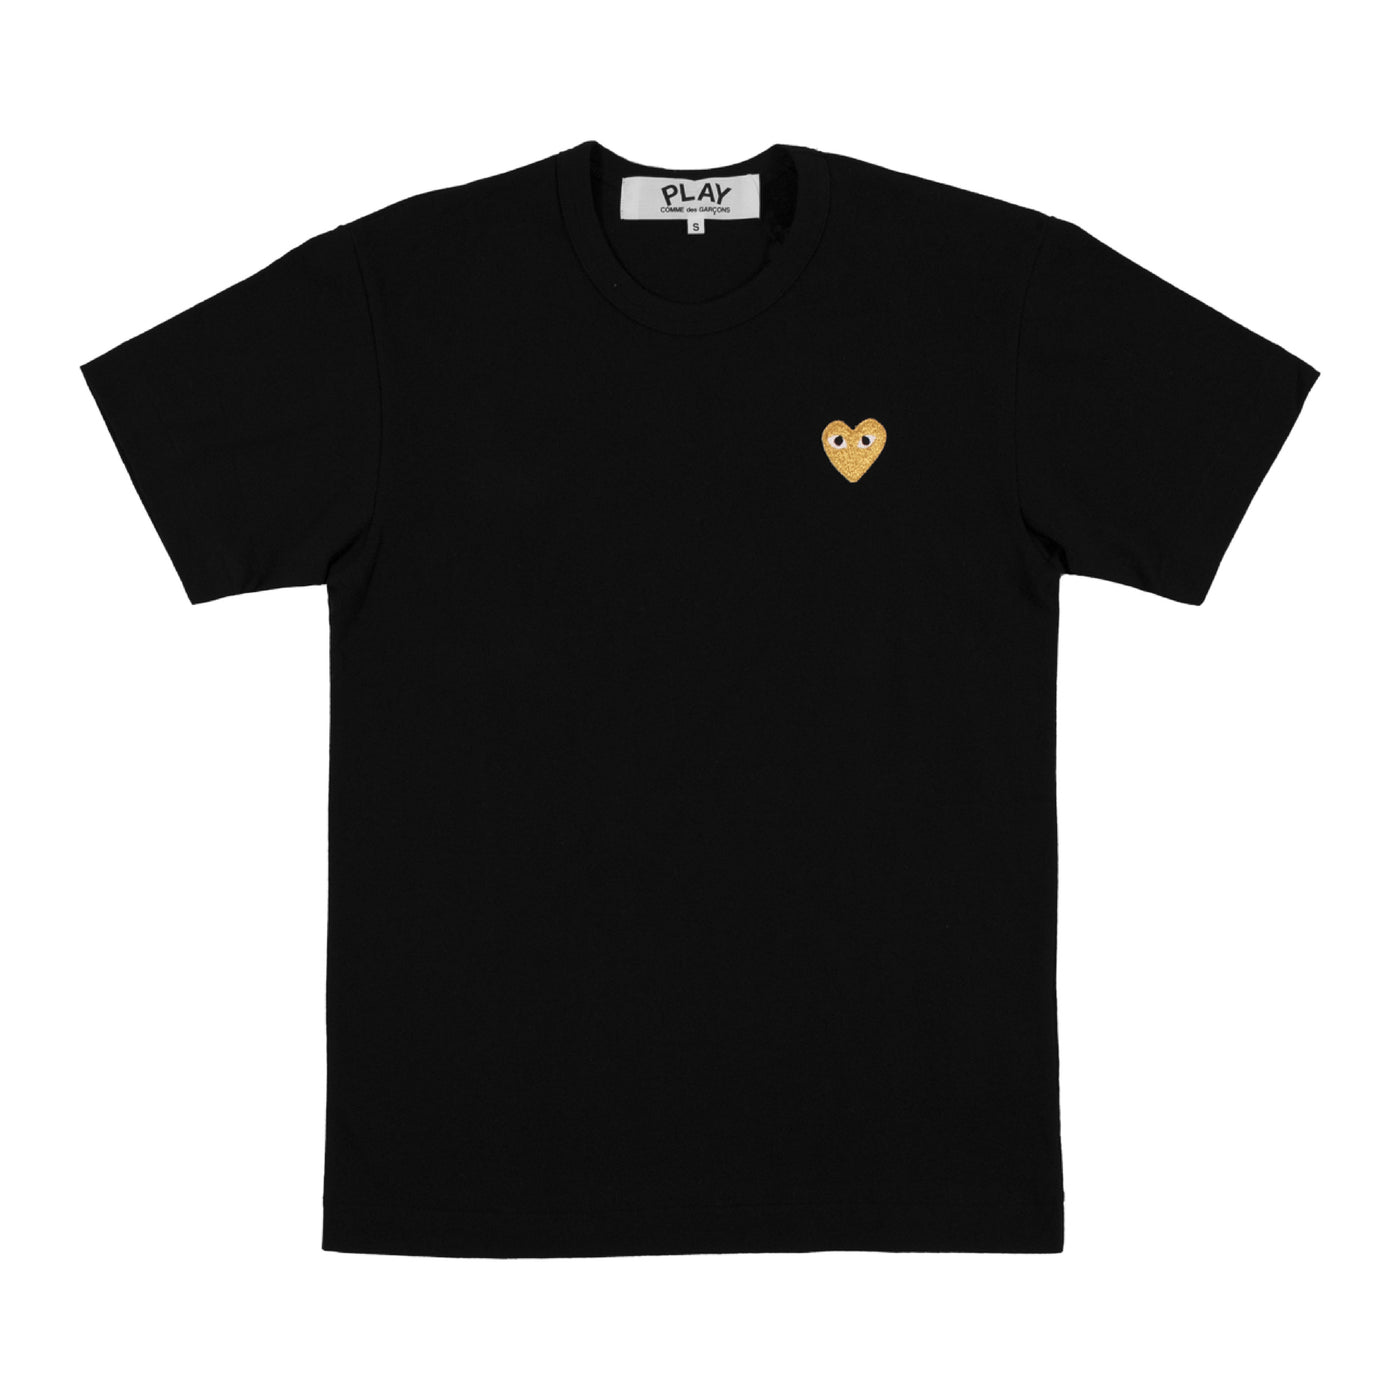 Load image into Gallery viewer, COMME DES GARCONS PLAY T-SHIRT WITH GOLD HEART BLACK